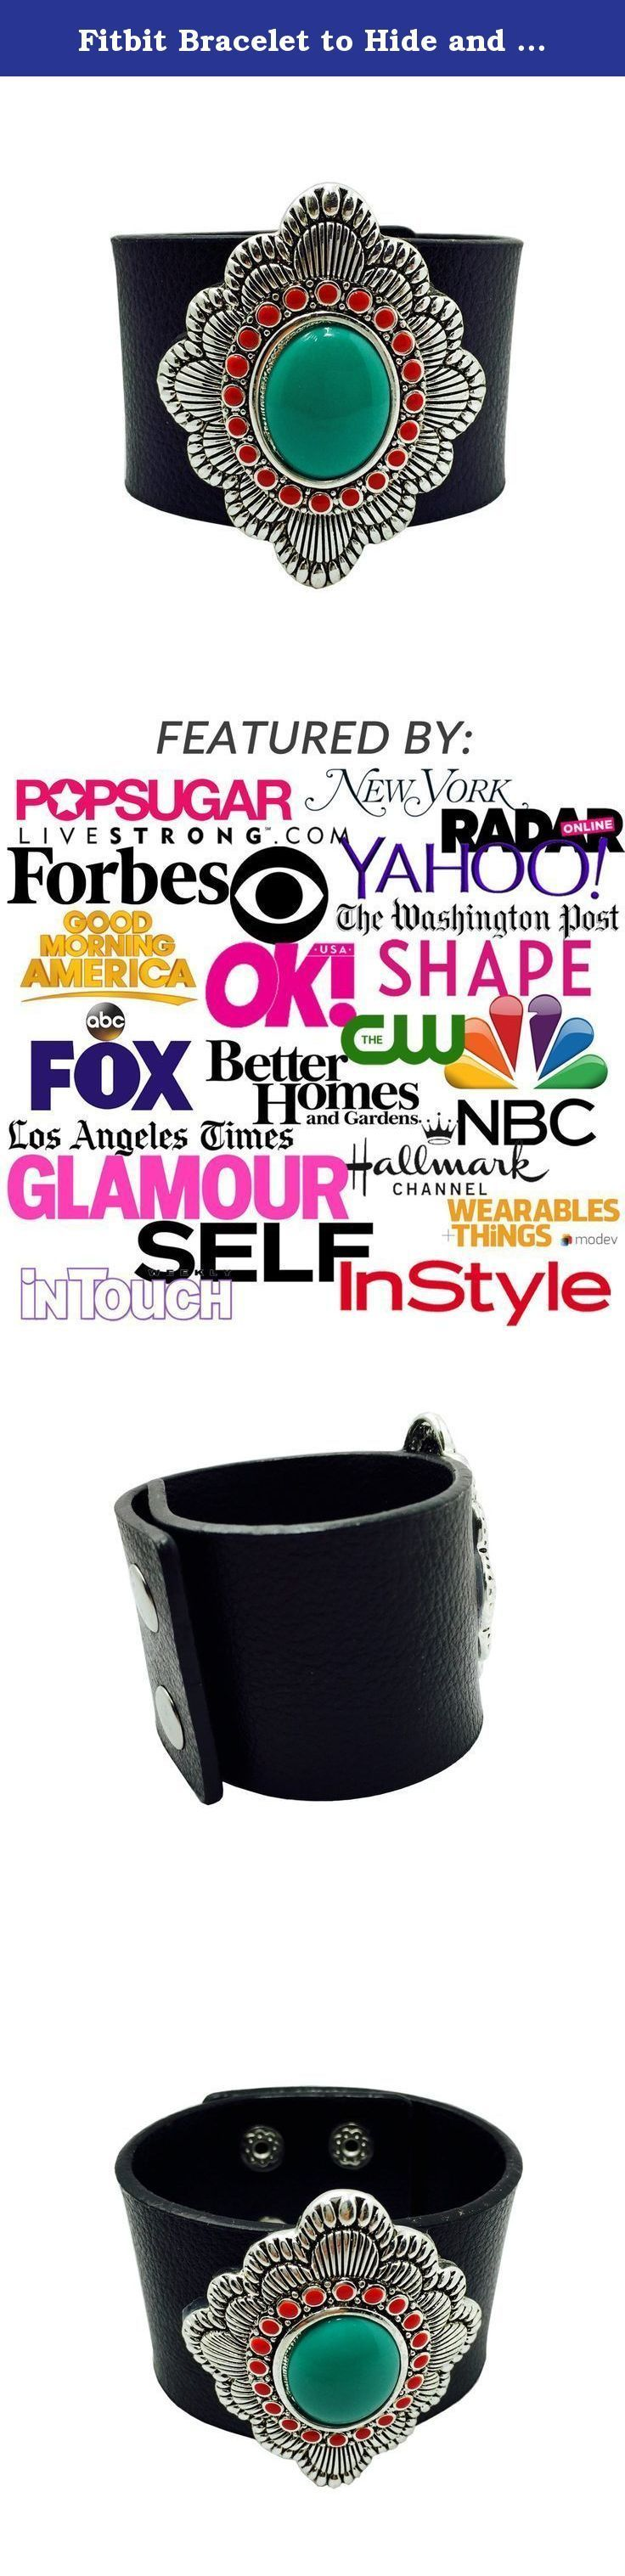 """nice Inspiration look """"Day to night"""" : Fitbit Bracelet to Hide and Protect Fitbit Flex and Flex 2 Fitness Trackers -The..."""